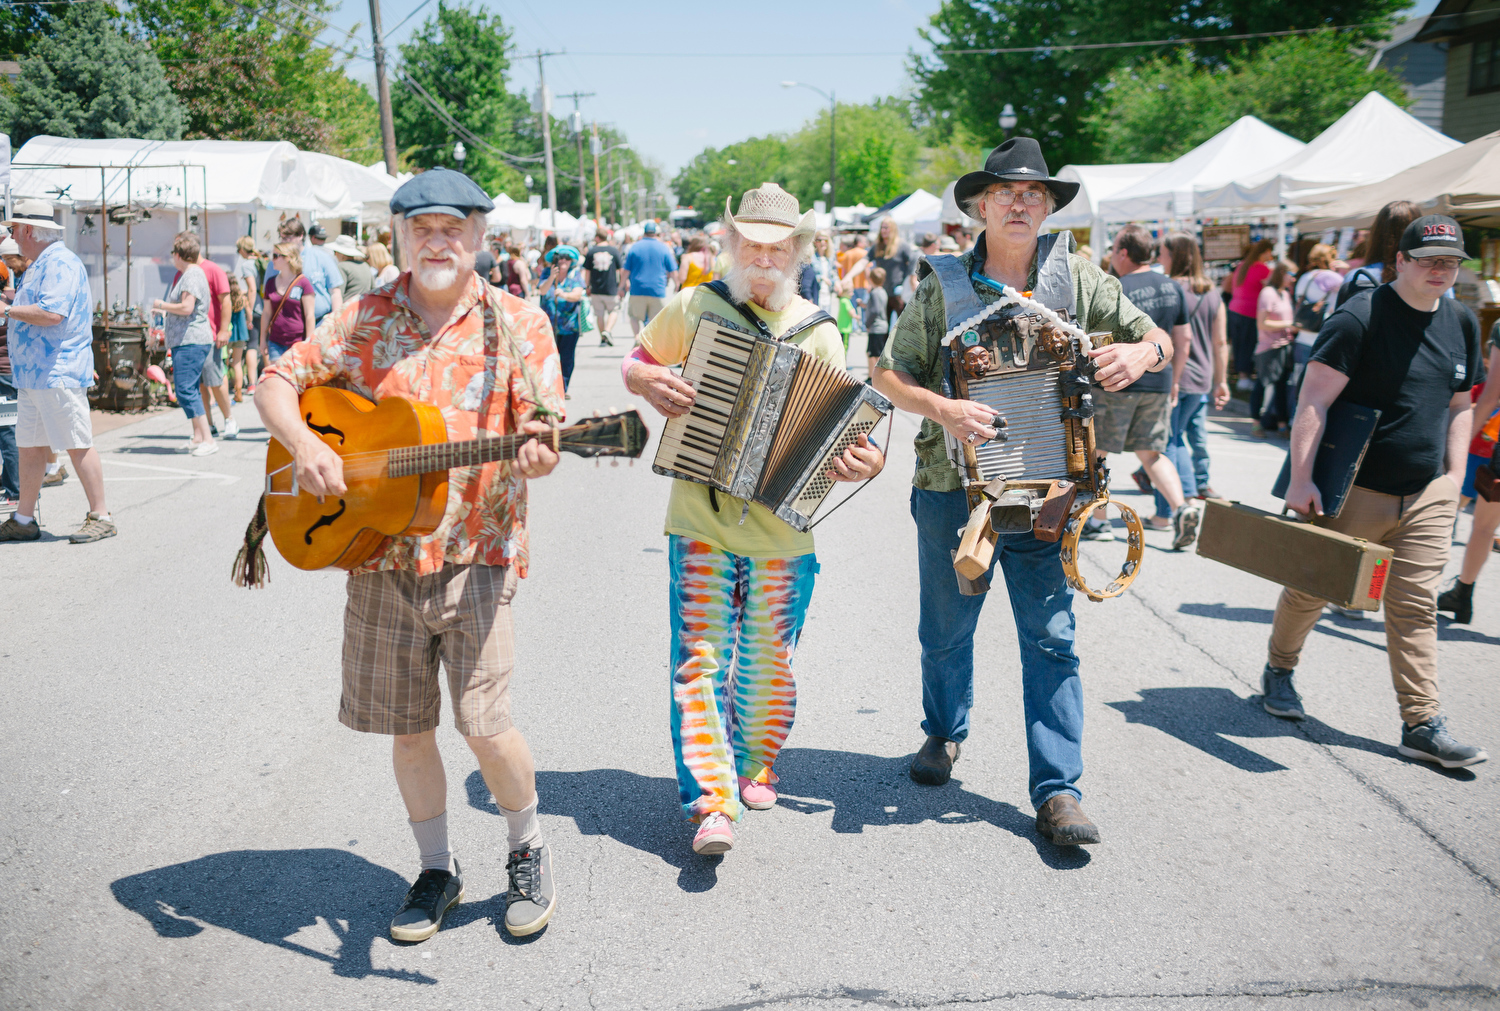 Artsfest on Walnut Street in Springfield, Mo. on May 6, 2017 in Springfield, Mo. Photo by Brad Zweerink.